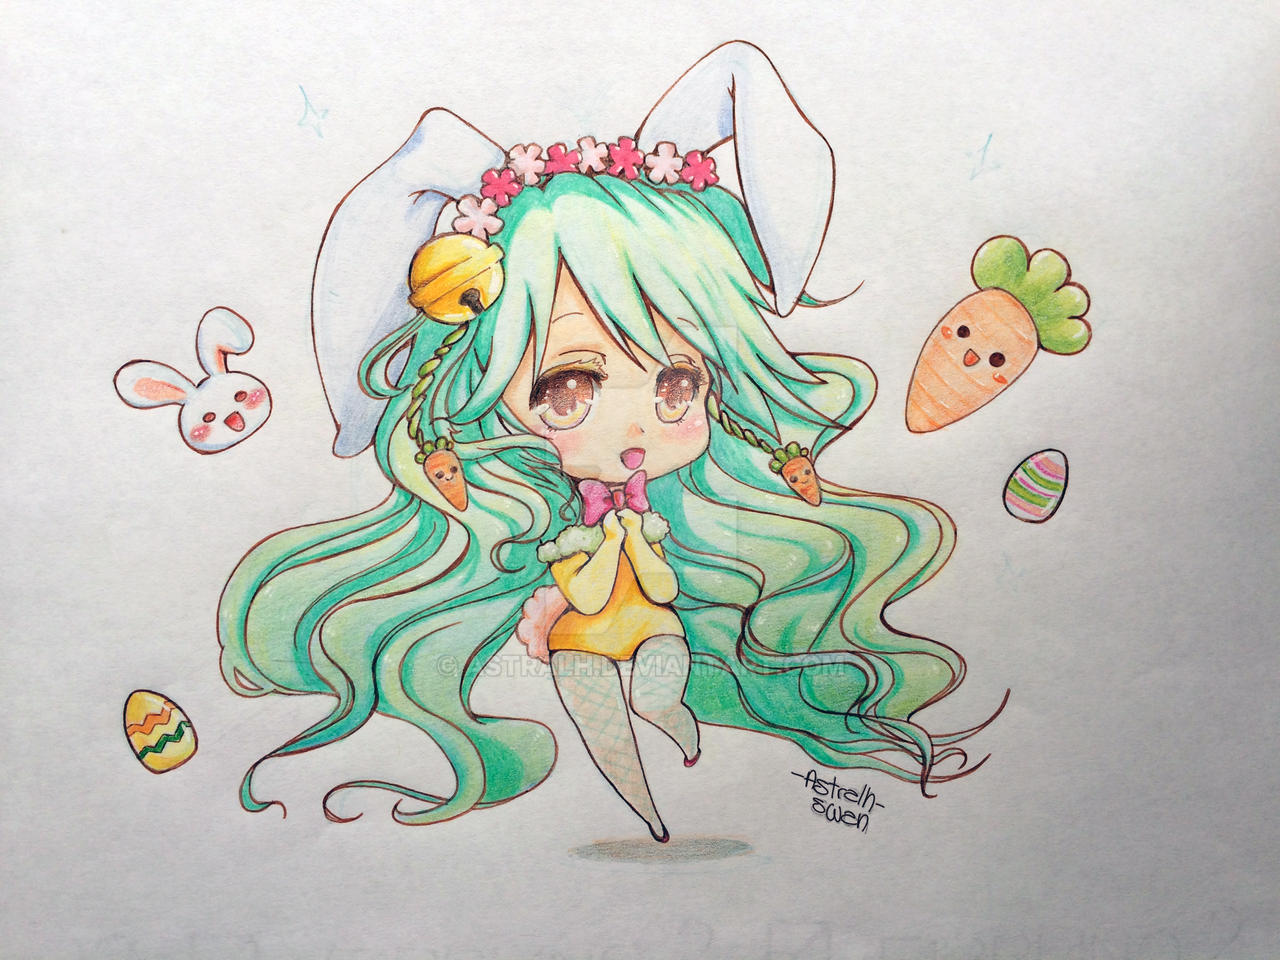 Pasqualina by astralh on deviantart for Disegni kawaii facili